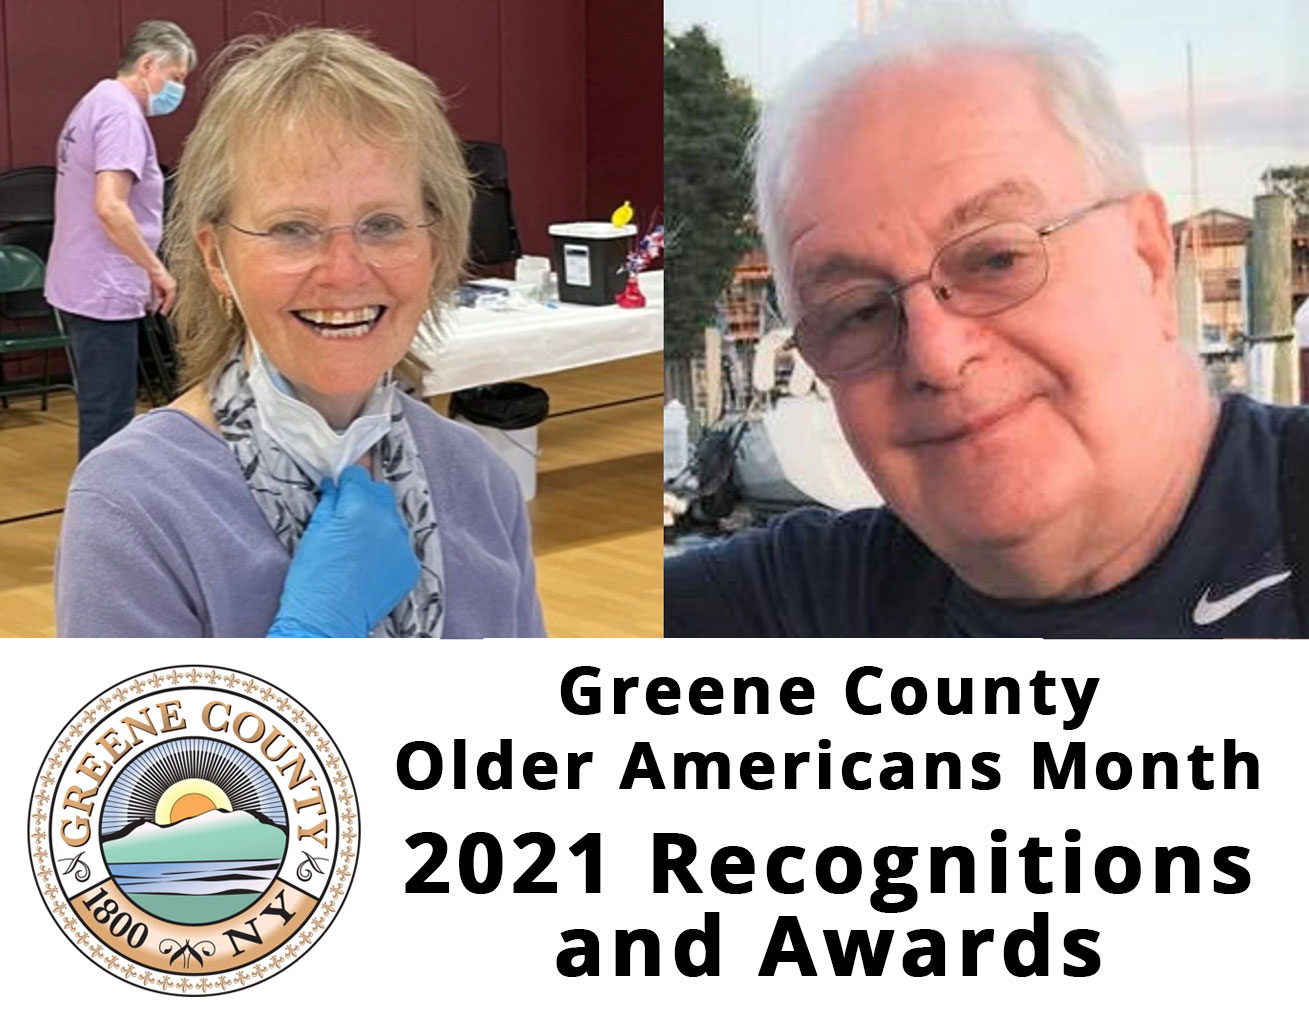 Greene County Honors Residents as Part of Older Americans Month in May